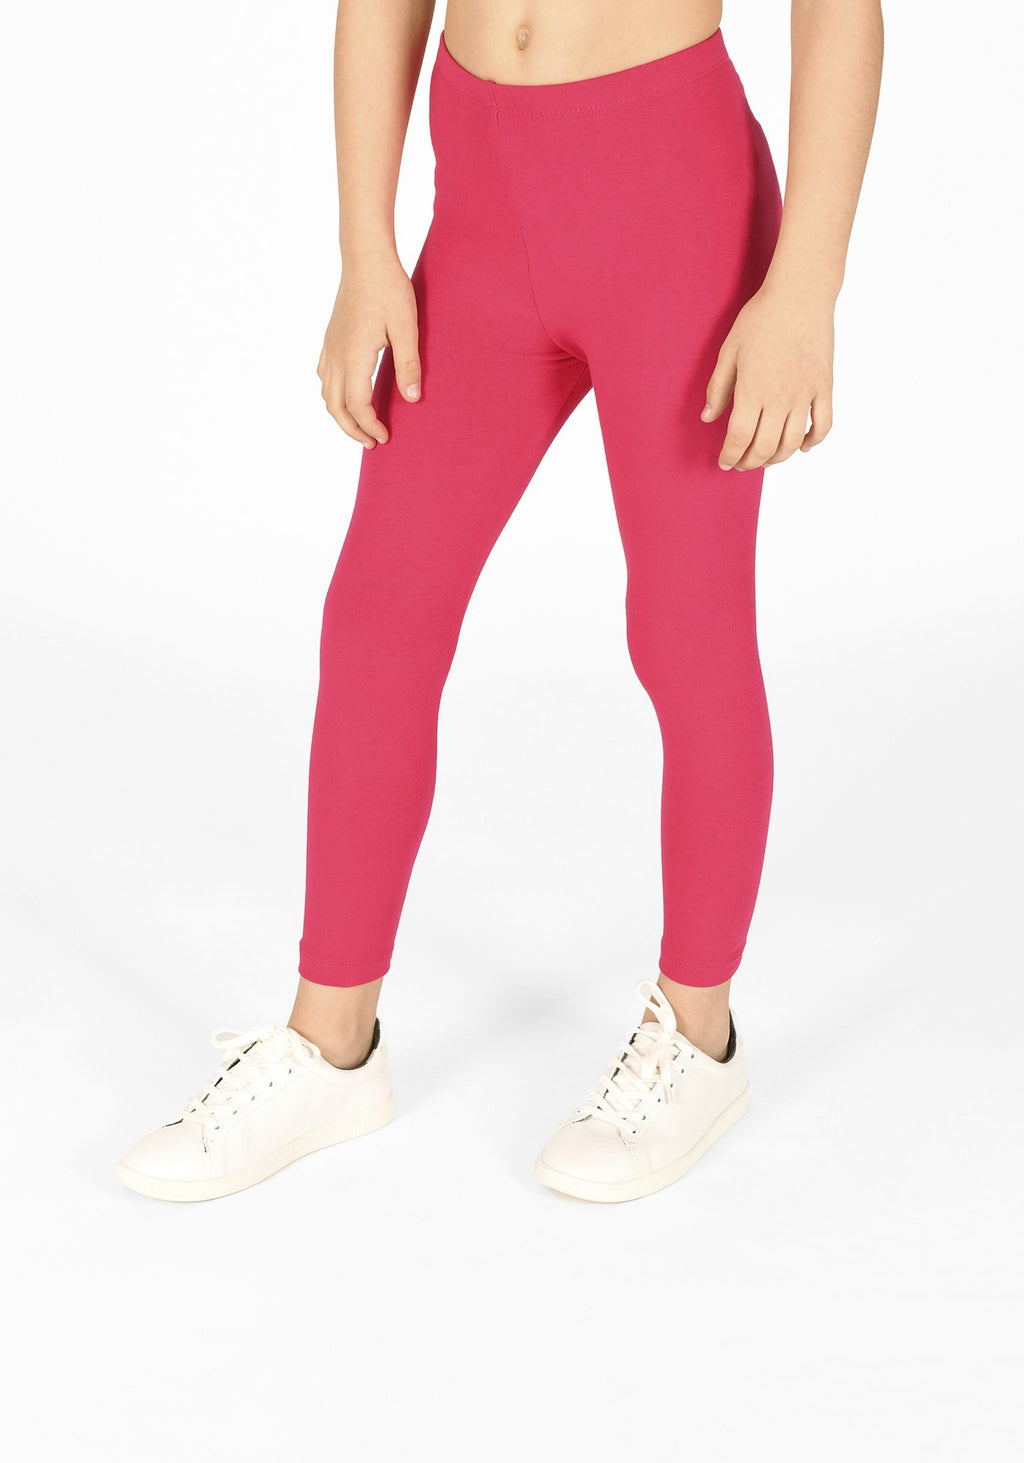 intense pink full length childrens leggings 1